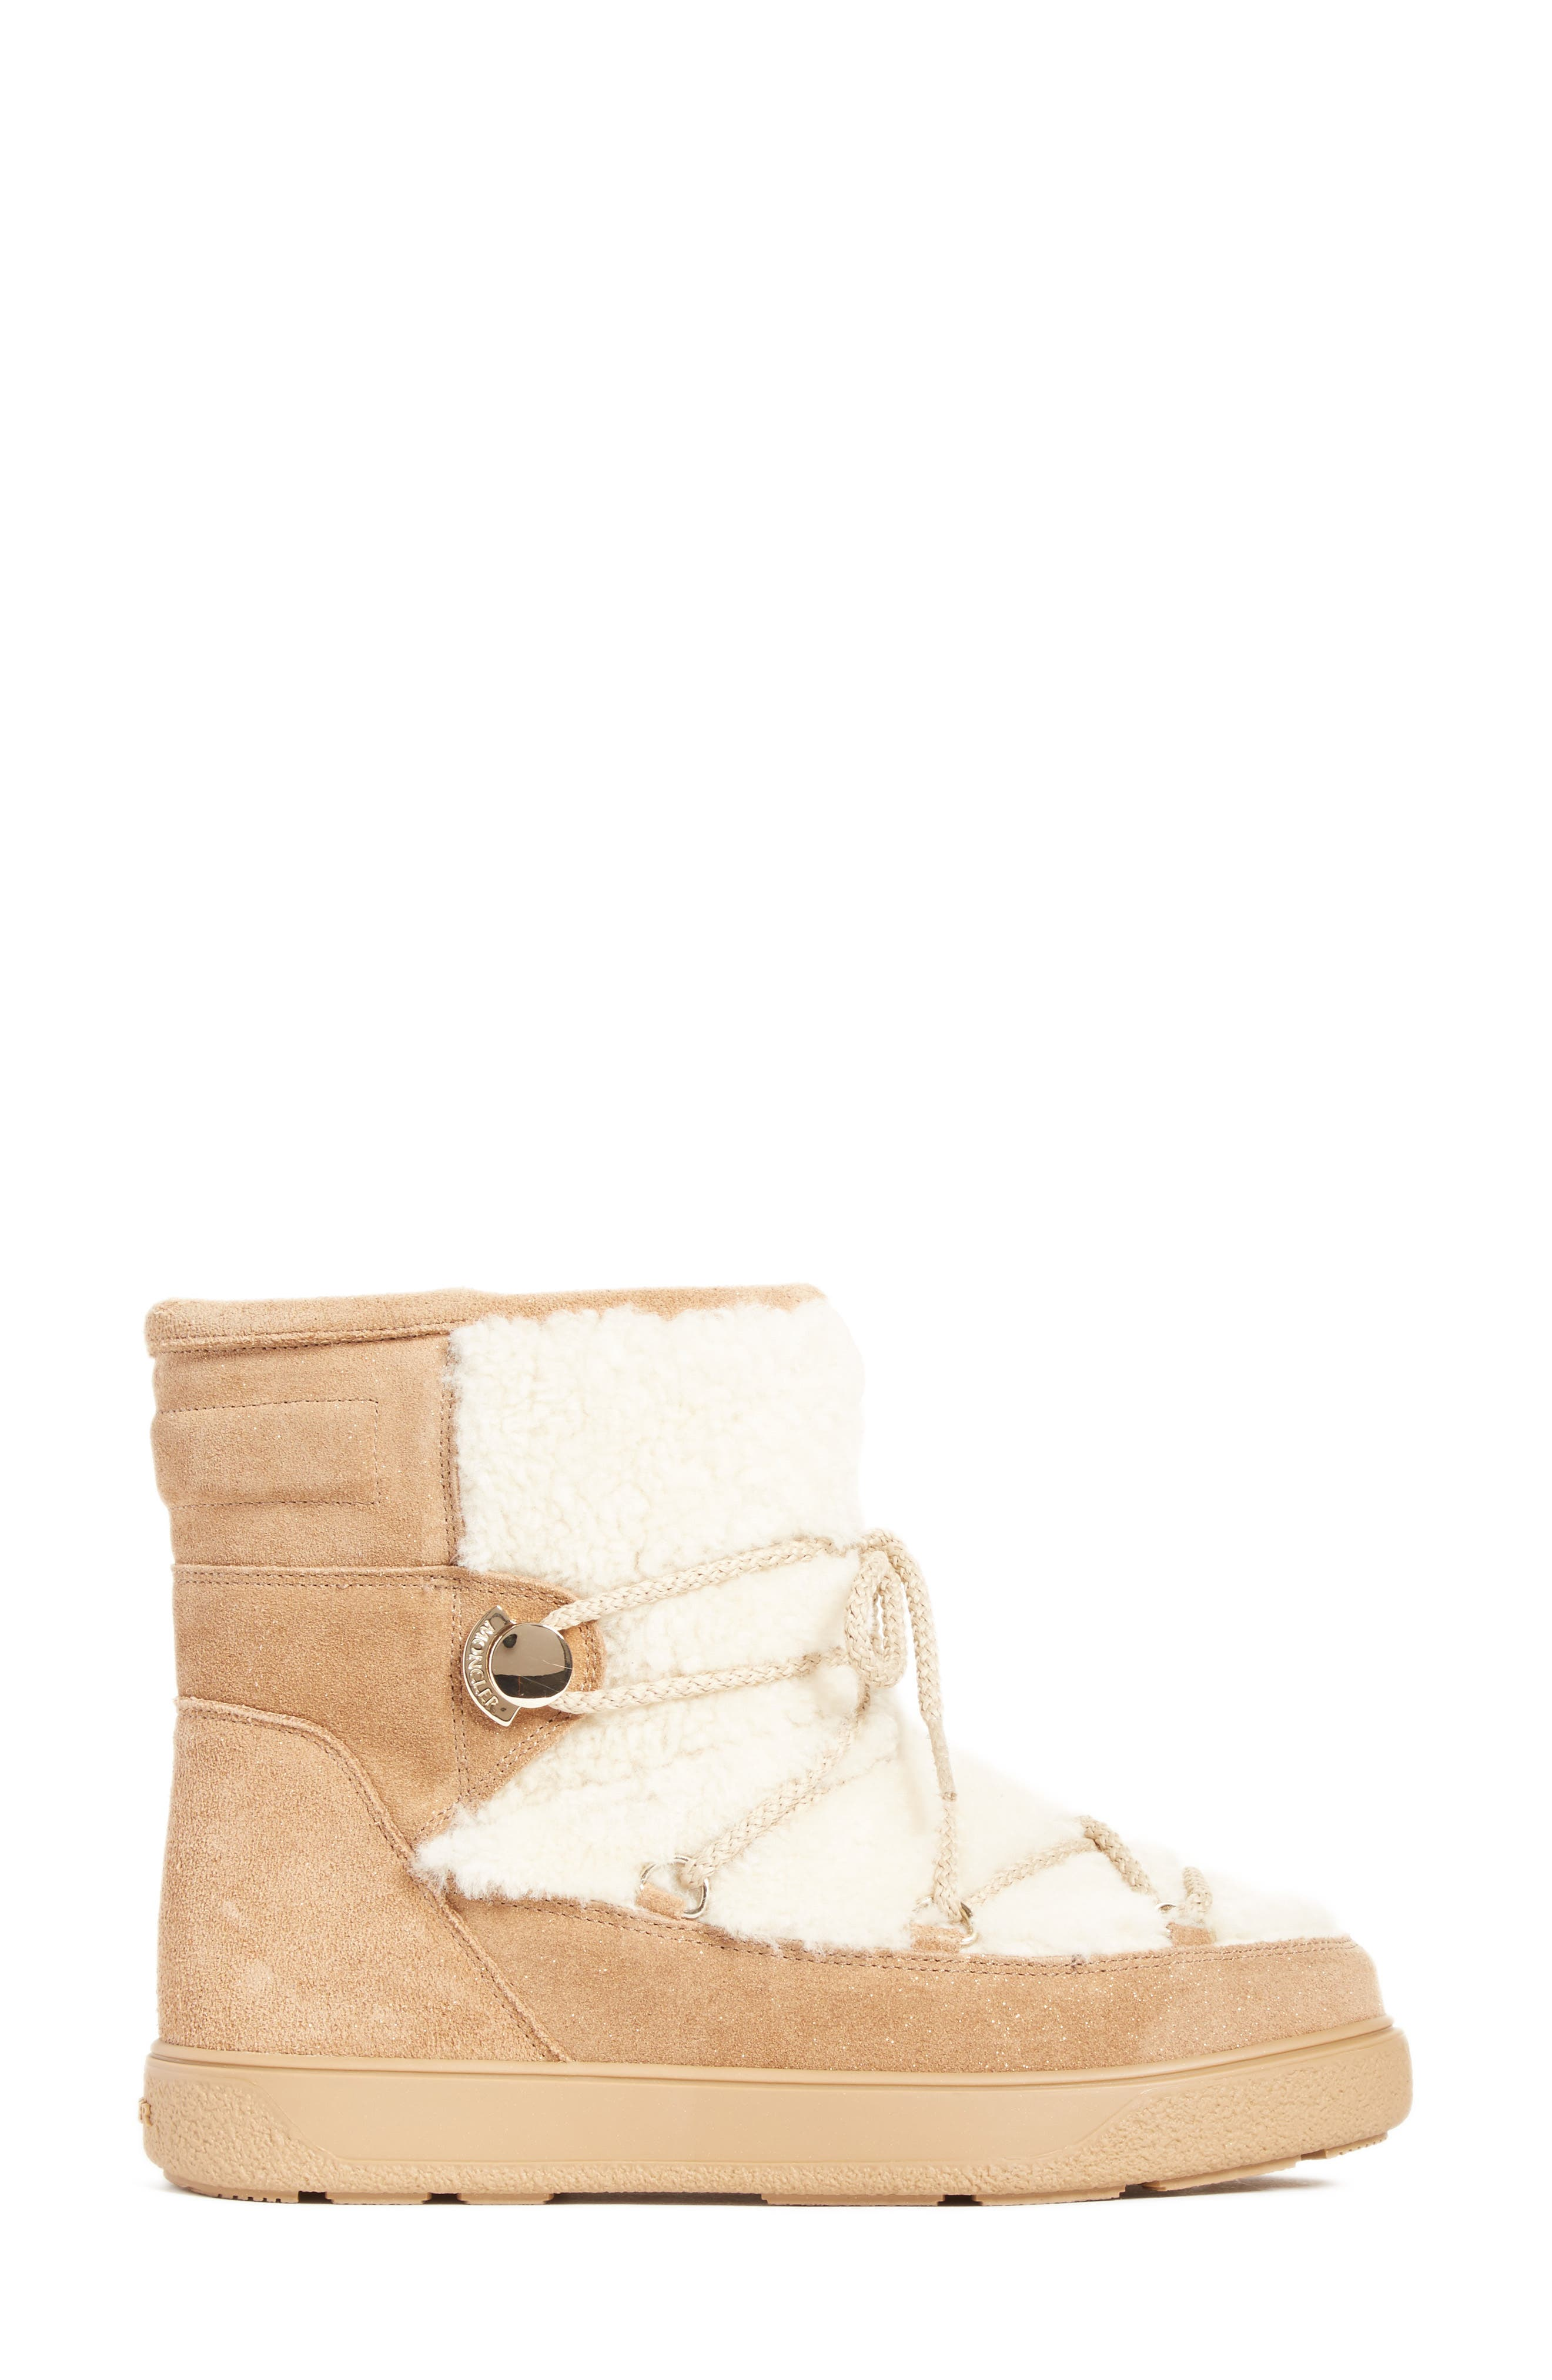 New Fanny Stivale Genuine Shearling Short Moon Boots,                             Alternate thumbnail 3, color,